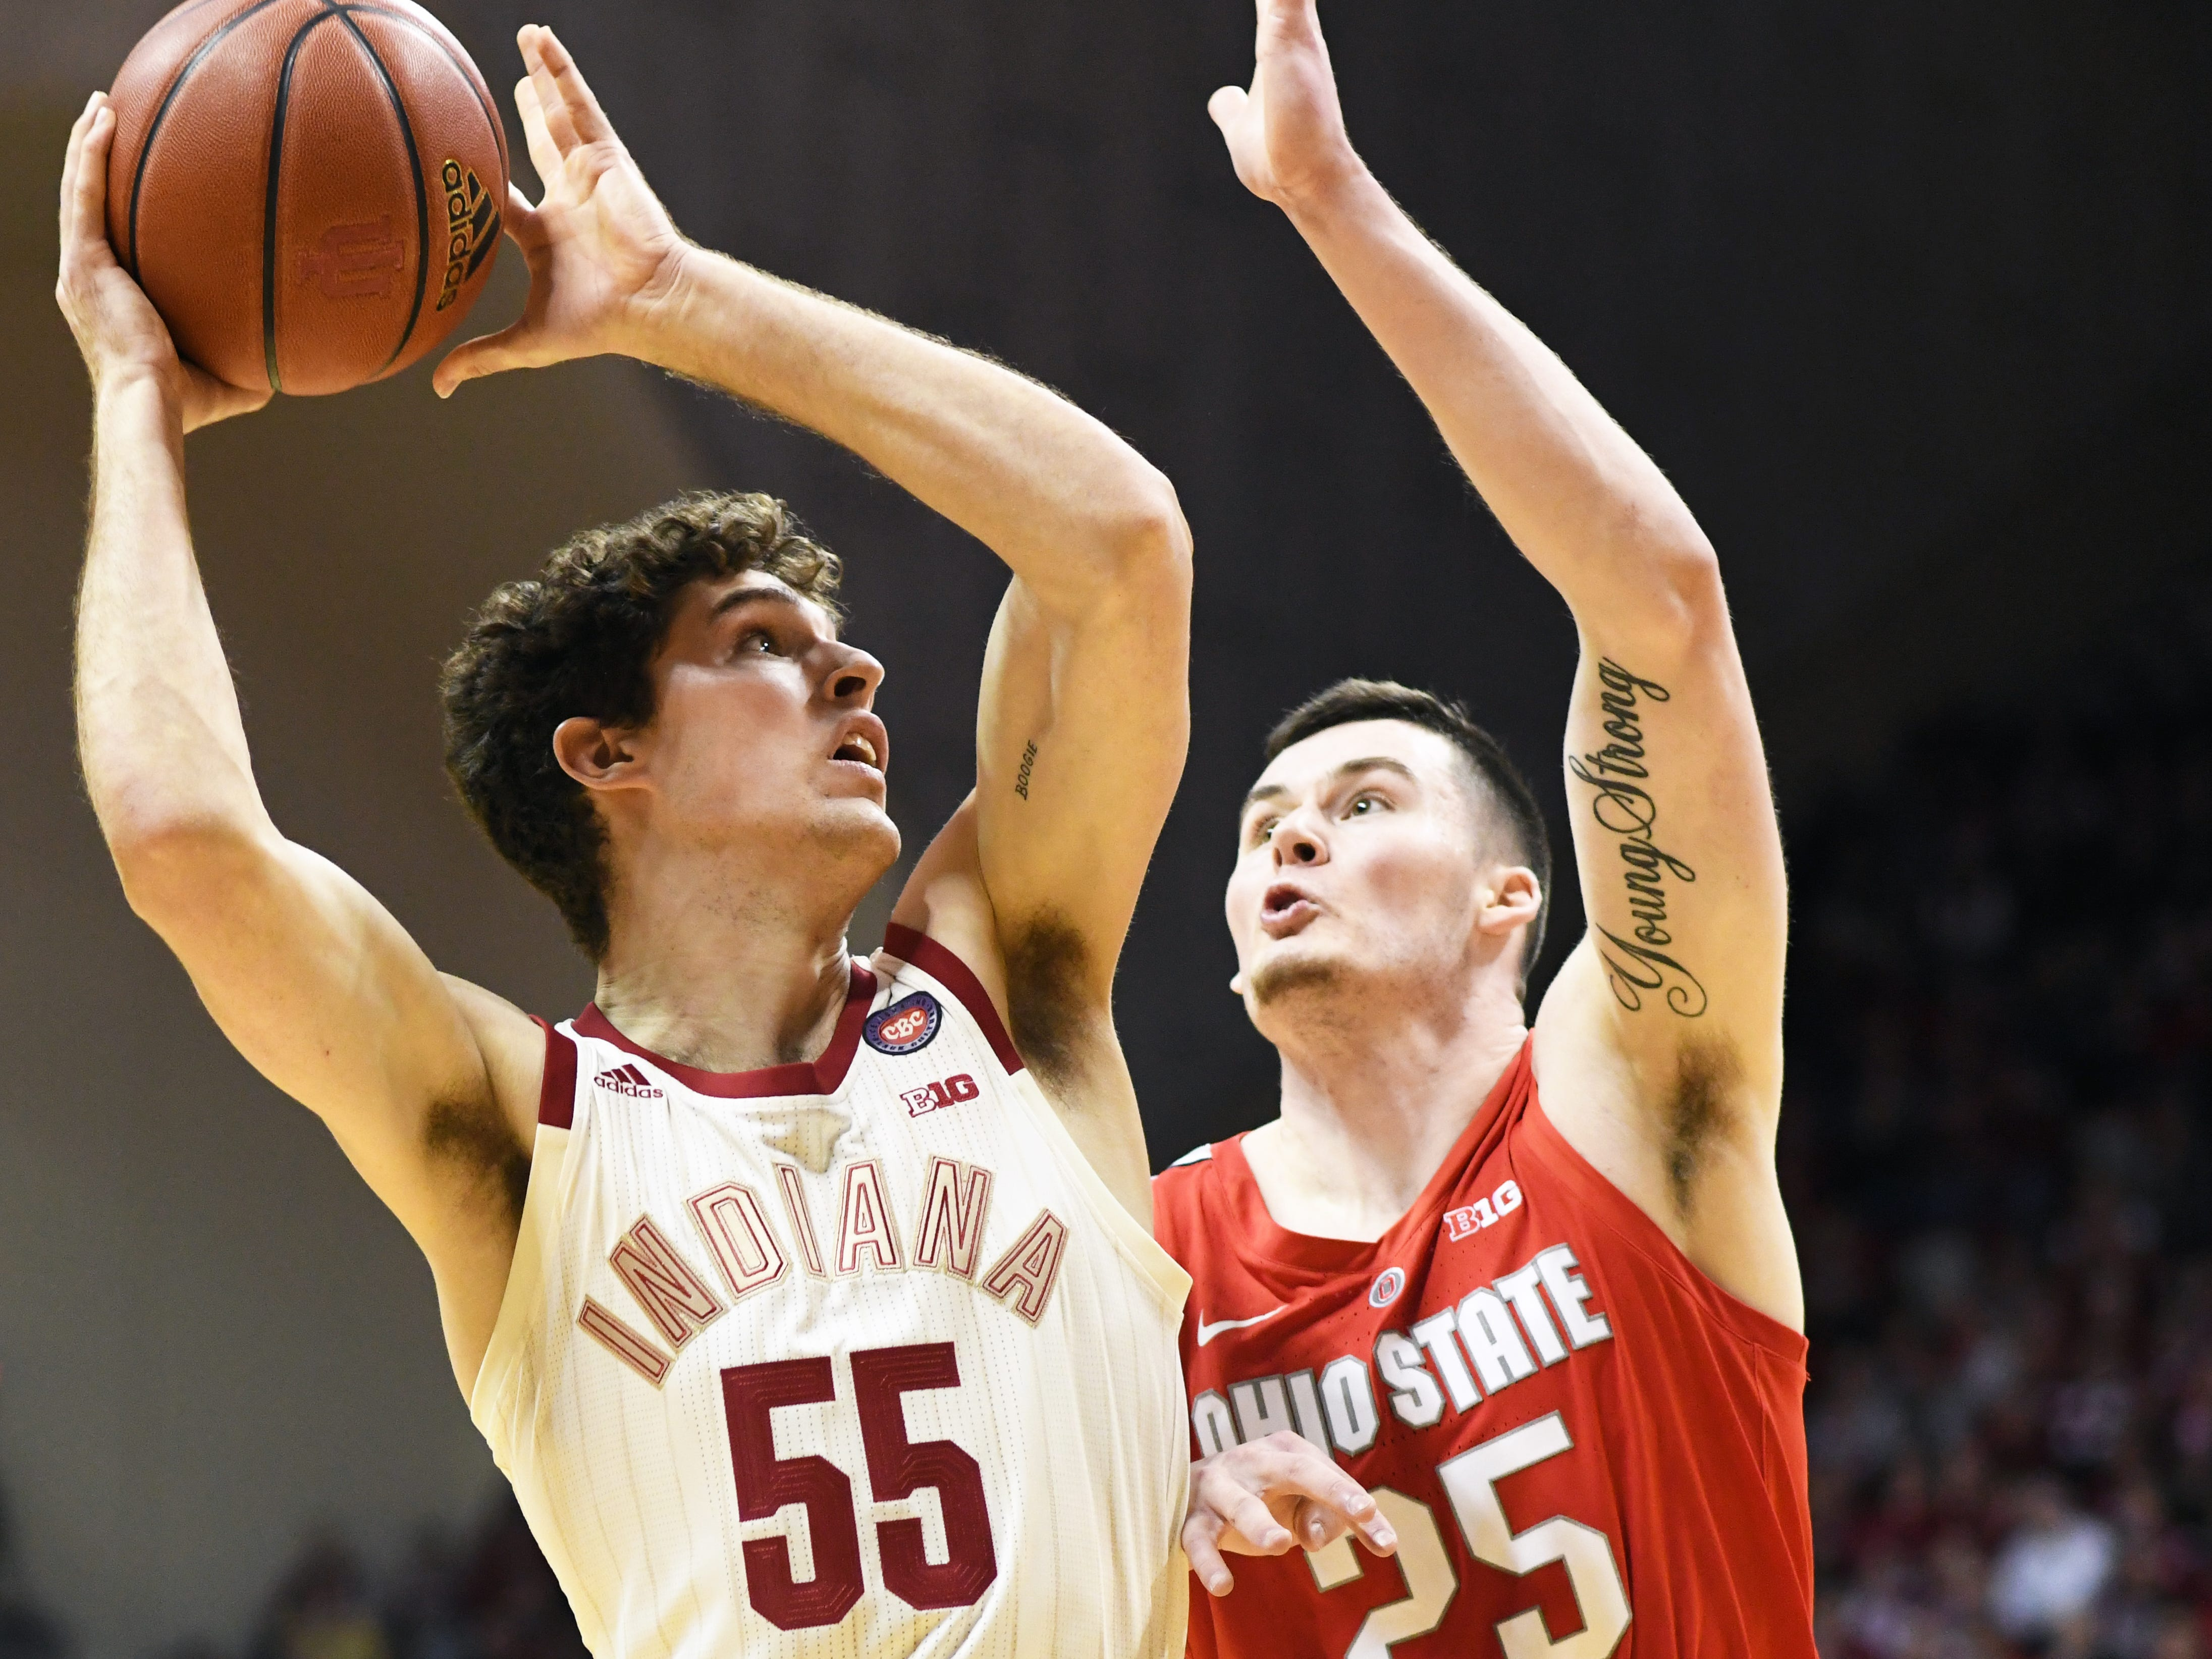 Indiana Hoosiers forward Evan Fitzner (55) attempts a shot during the game against Ohio State at Simon Skjodt Assembly Hall in Bloomington Ind., on Sunday, Feb. 10, 2019.